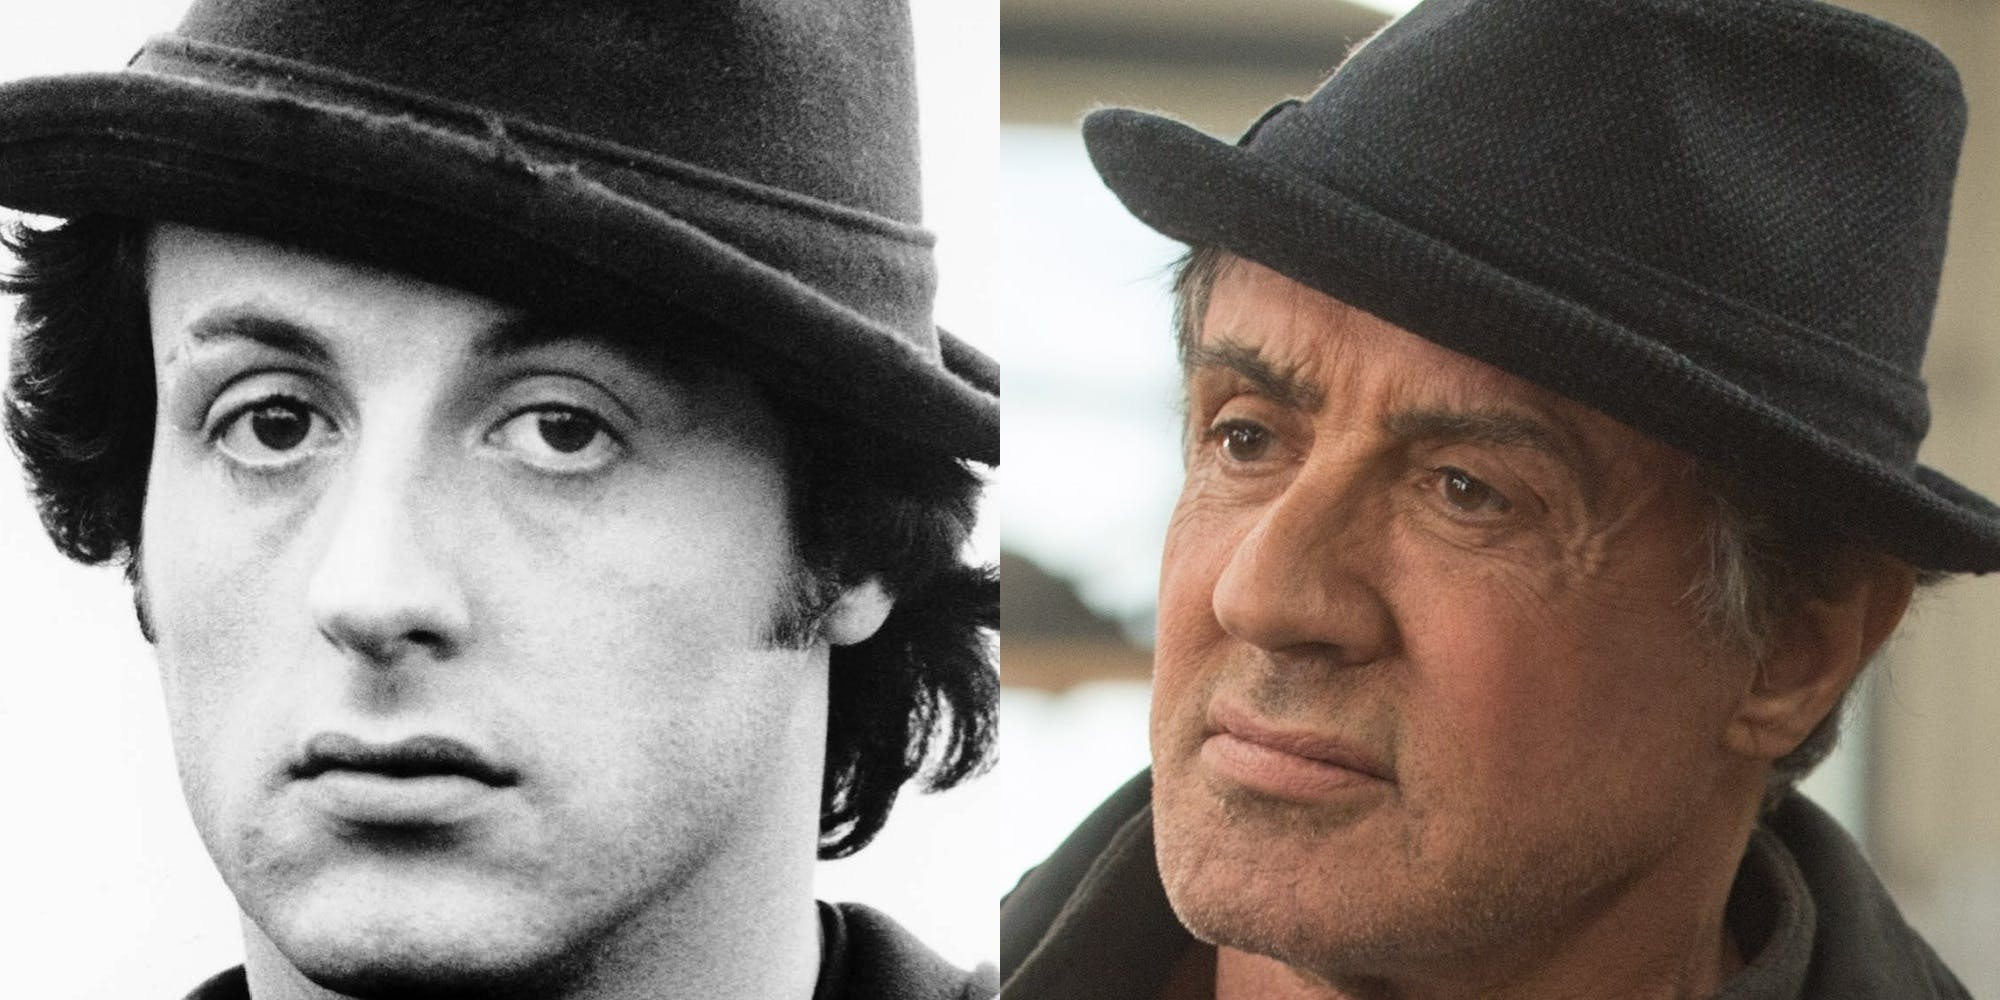 Sylvester-Stallone-In-Rocky-II-and-Creed.jpg